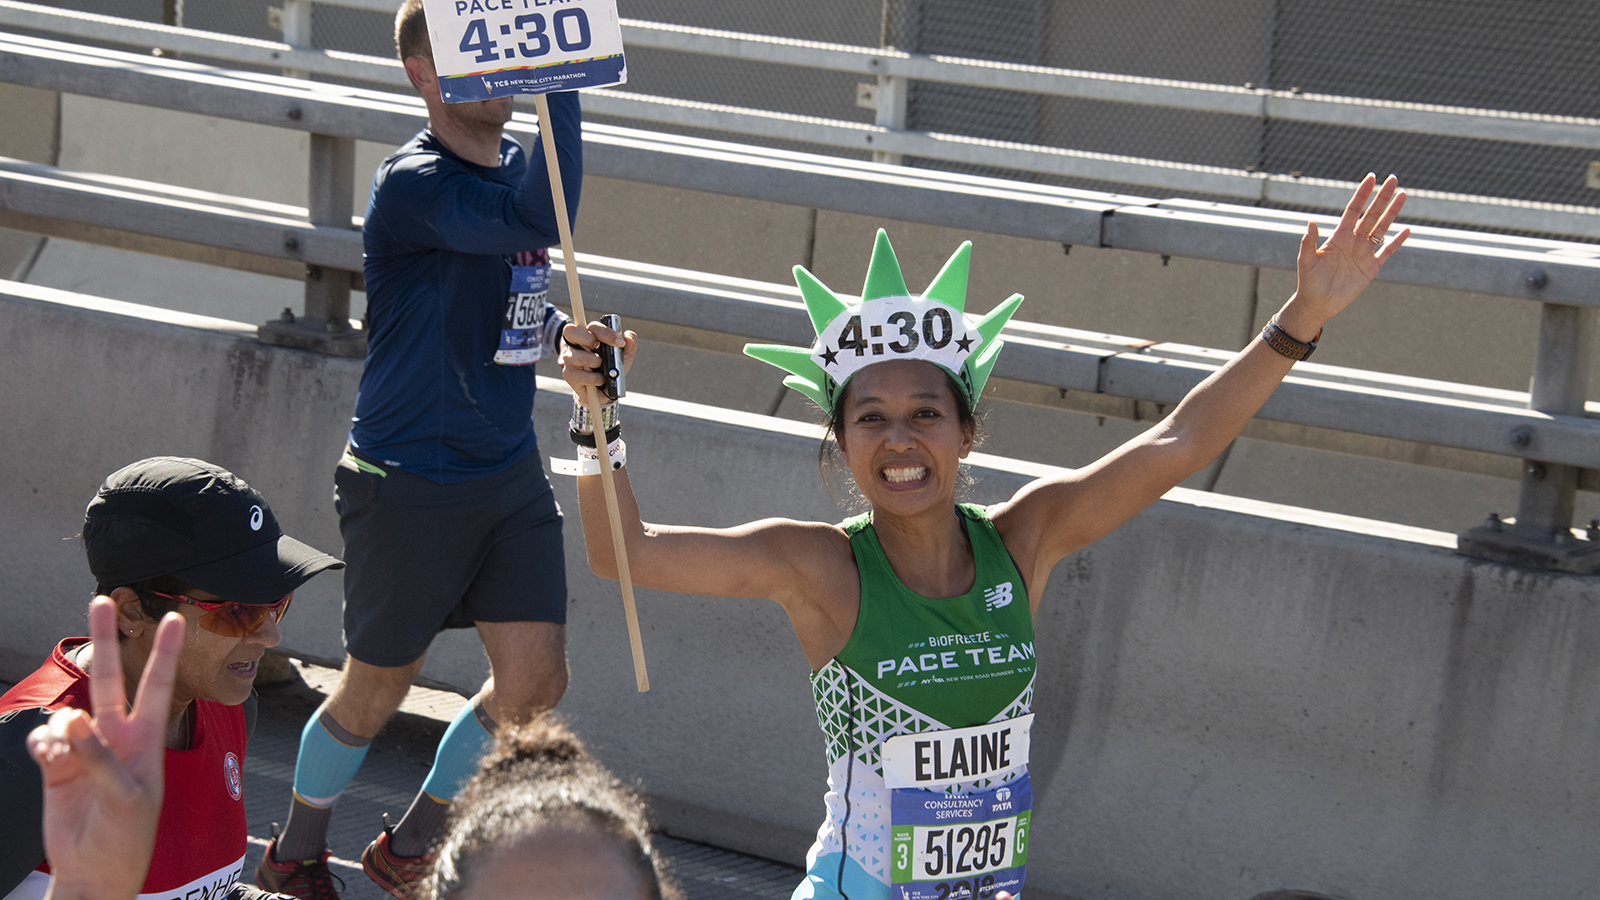 NYRR Pace Team member Elaine during the NYC Marathon with her pacing sign and wearing a statue of liberty hat